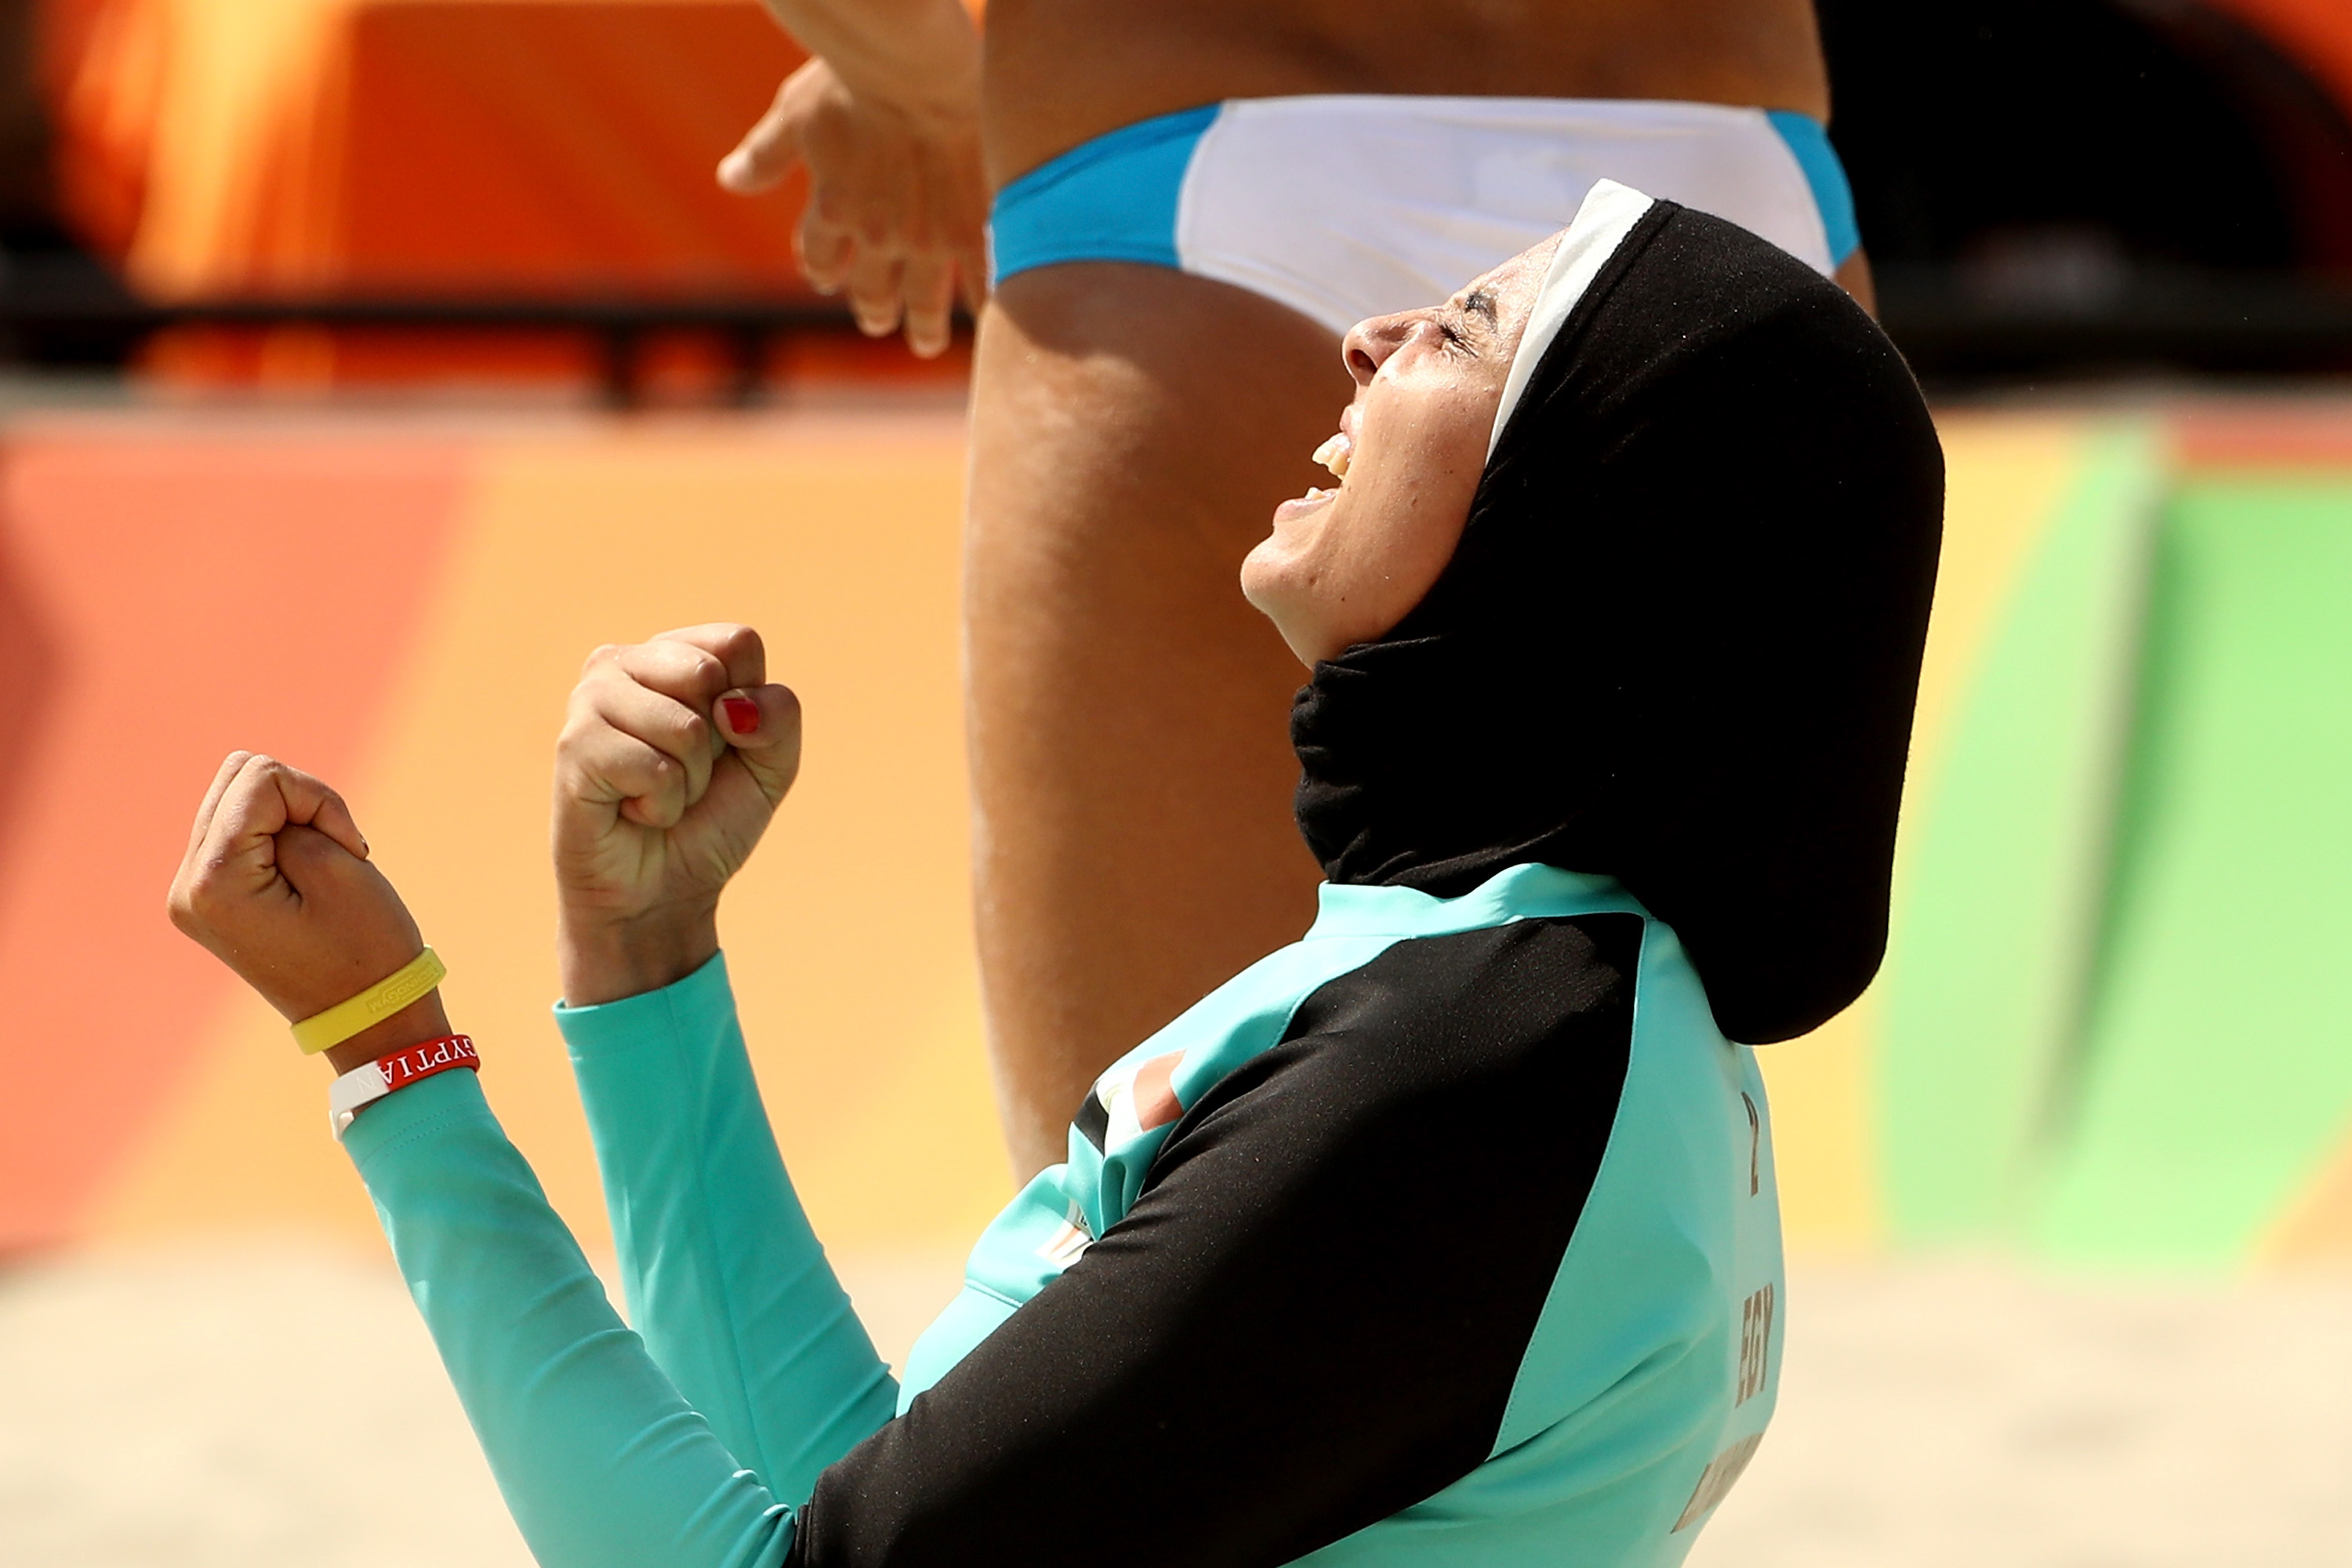 Doaa Elghobashy of Egypt, competing in a hijab, celebrates during a match against Italy in women's beach volleyball at the Rio 2016 Olympic Games. Athletes will now be permitted to wear a hijab in international basketball competition. (Getty Images)